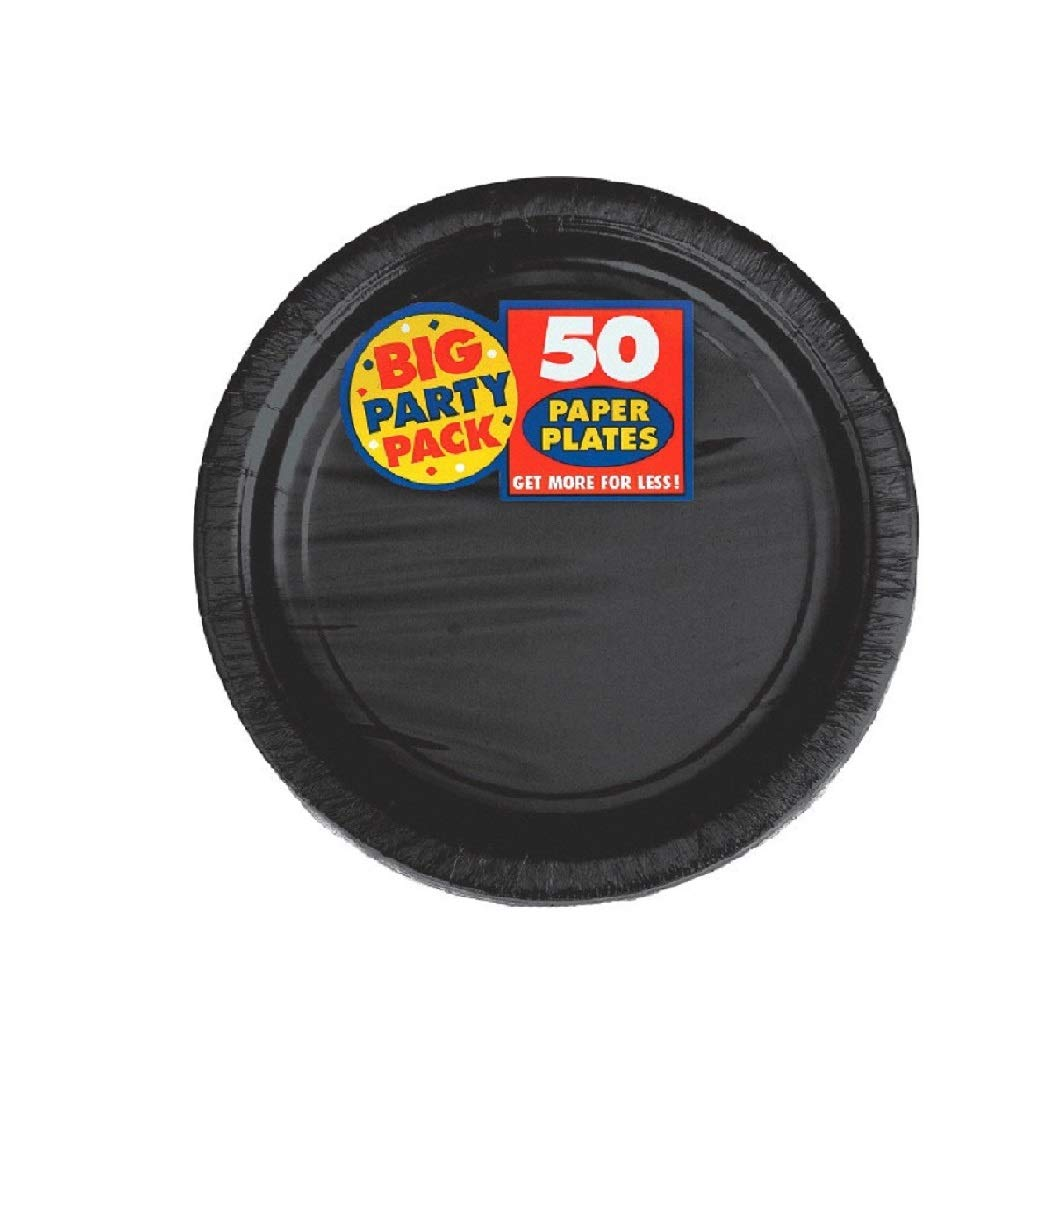 Amscan Big Party Supplies Pack Black Color Bundle set for 50 Guests 9'' Dinner Paper Plates, 7'' Luncheon Paper Plates and, 2-ply Luncheon Napkins with a Complementary Recipe Card by Delexiana (Image #3)